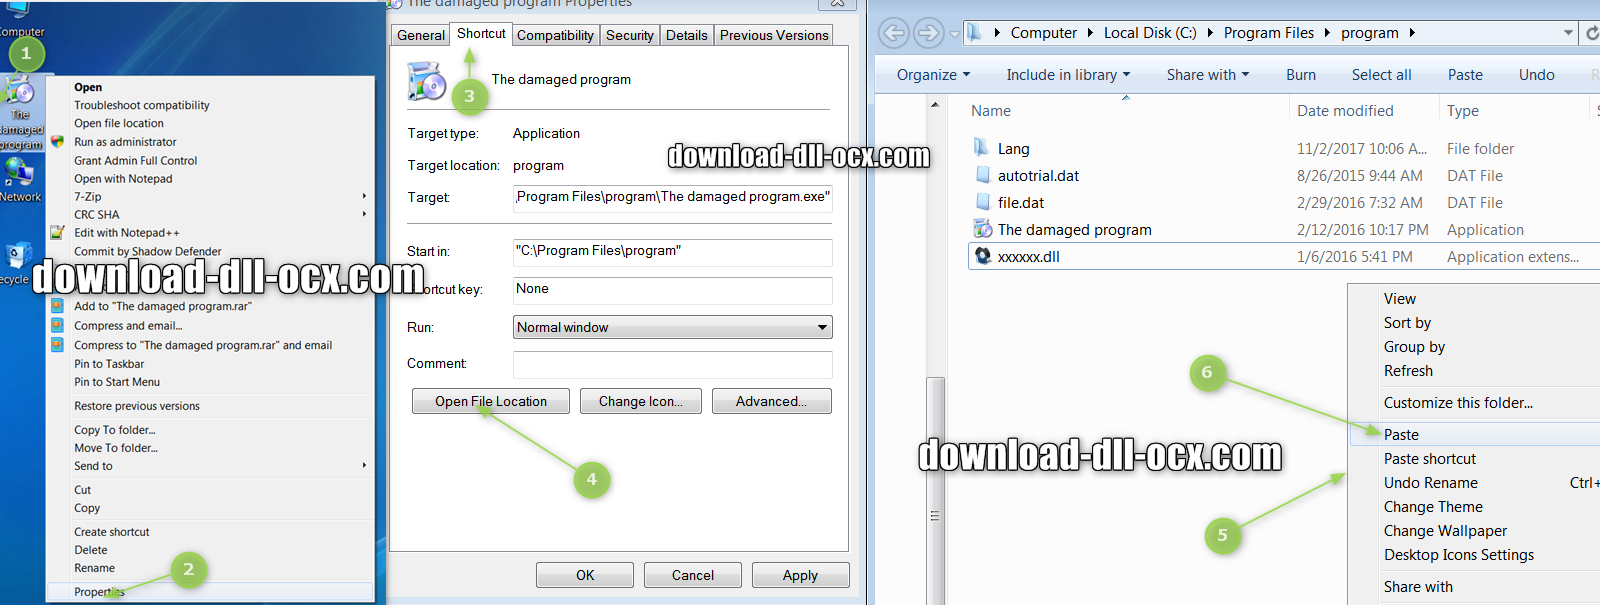 how to install SimpleRegistry.dll file? for fix missing